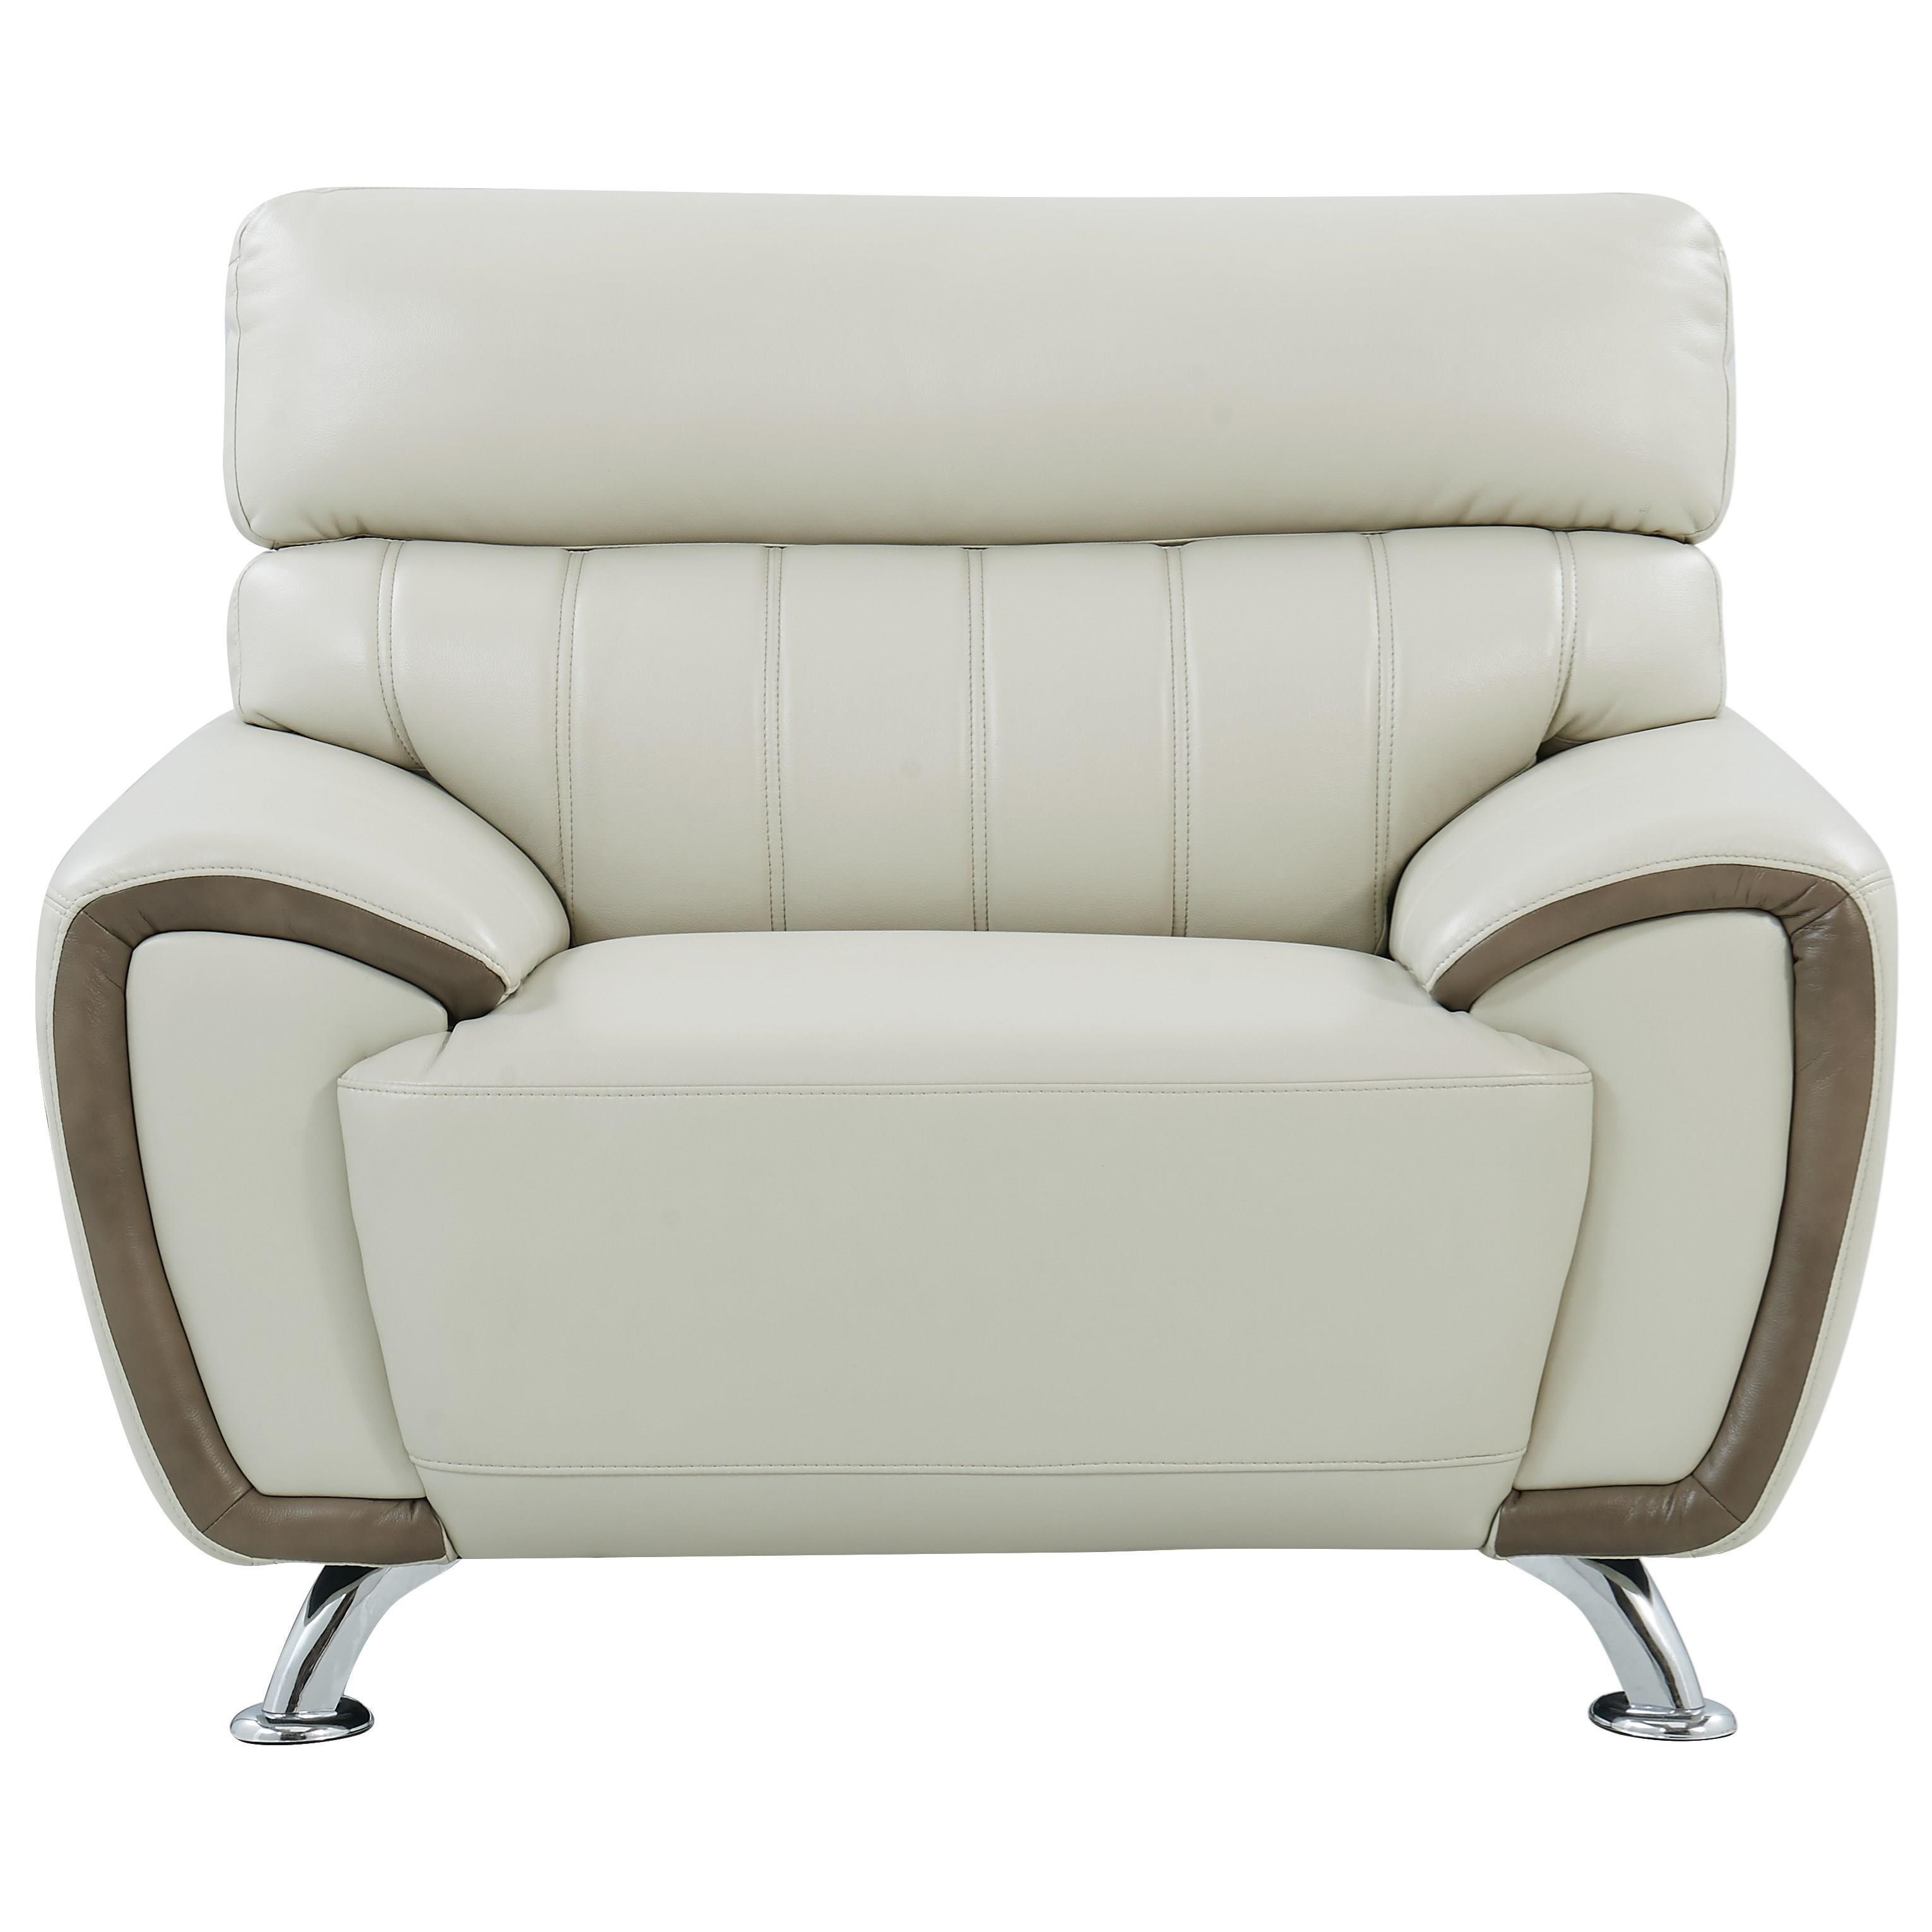 U8750 Stitch Detailed Chair by Global Furniture at Nassau Furniture and Mattress